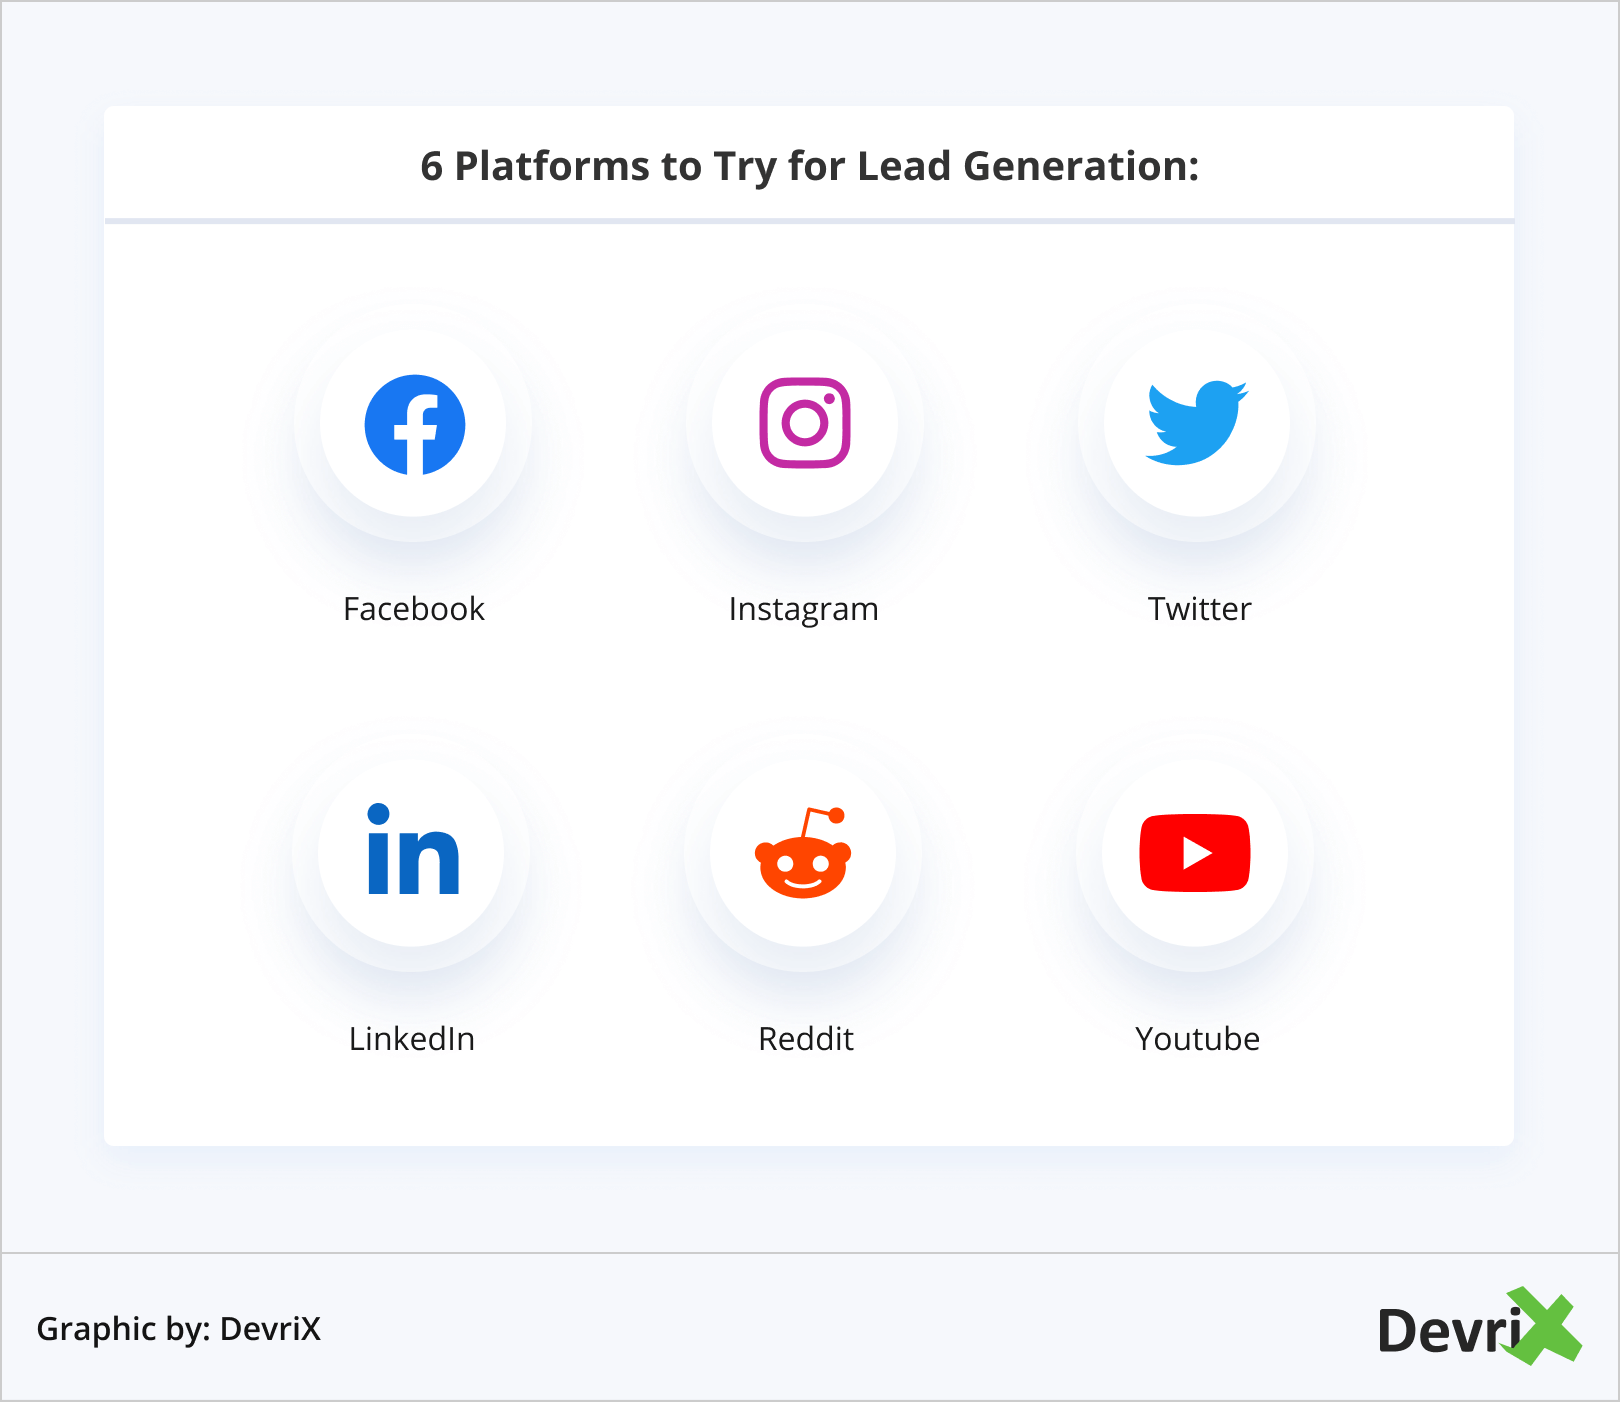 6 Platforms to Try for Lead Generation